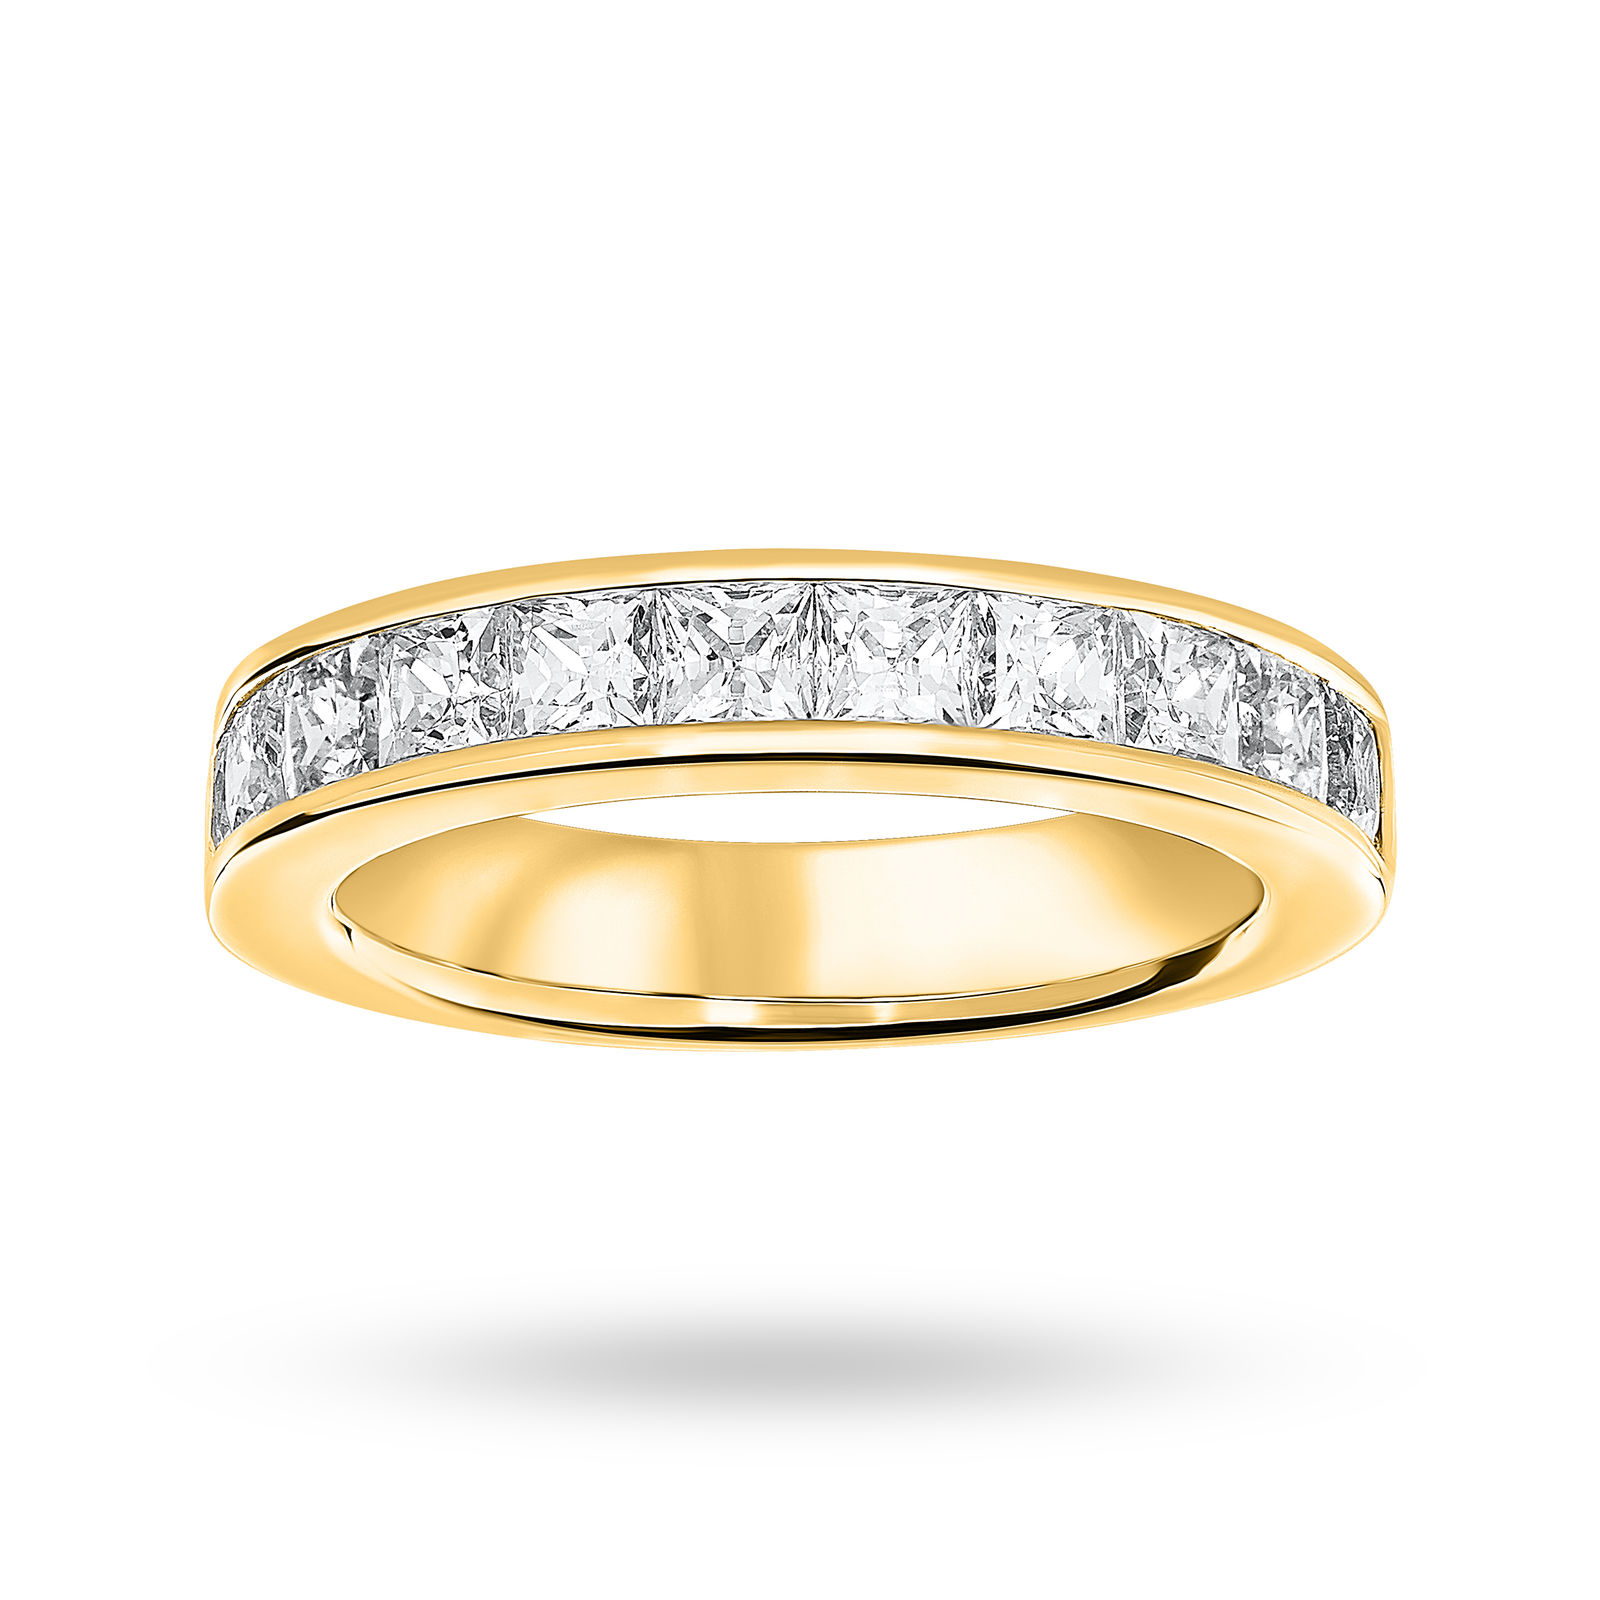 9 Carat Yellow Gold 2.00 Carat Princess Cut Half Eternity Ring